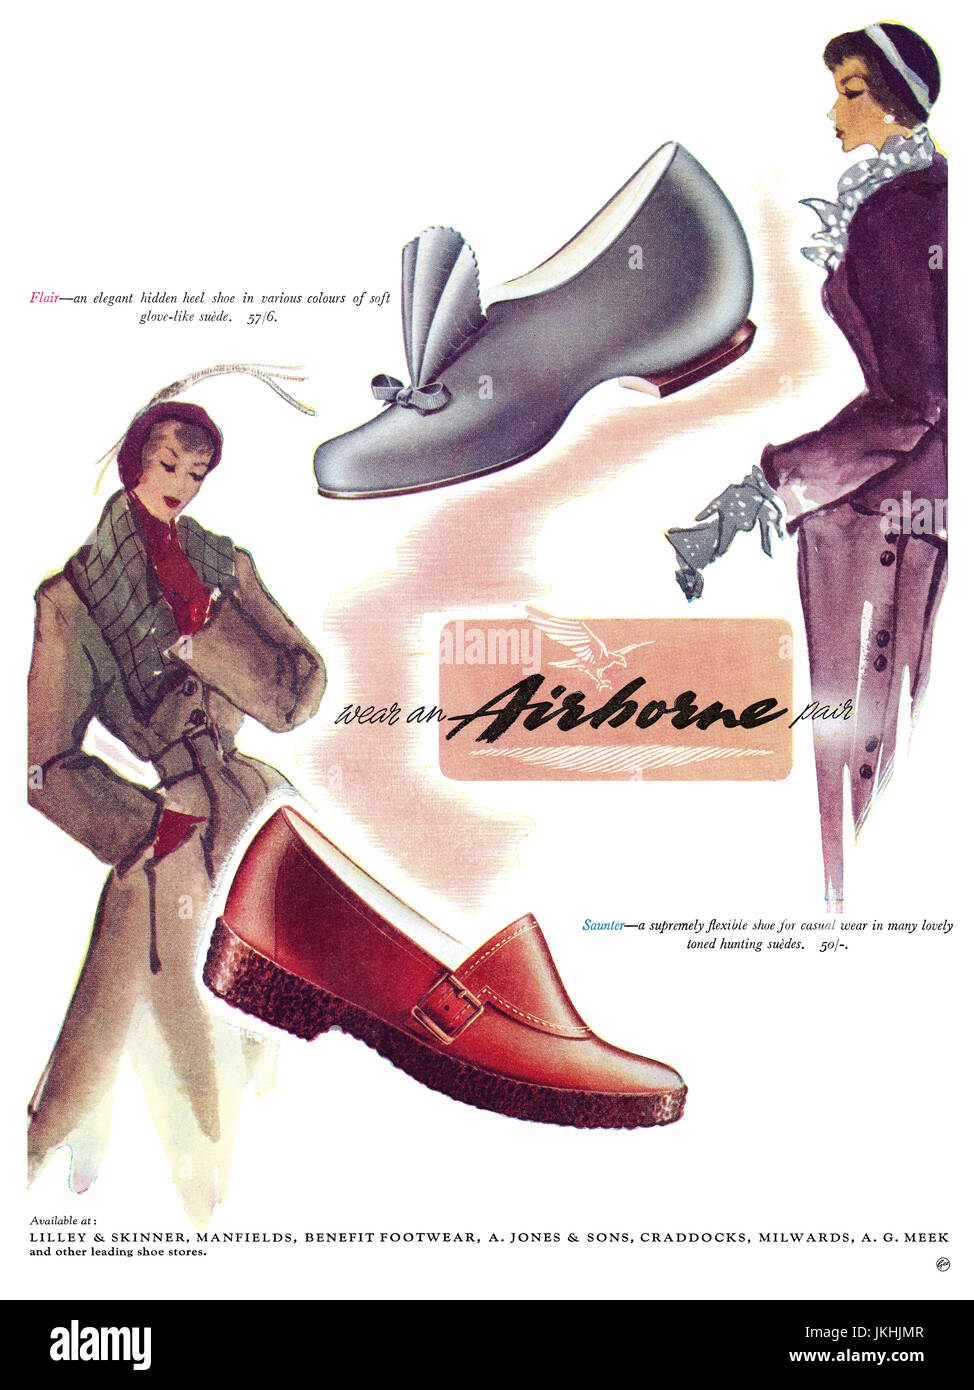 1950 British advertisement for Airborne Shoes. - Stock Image